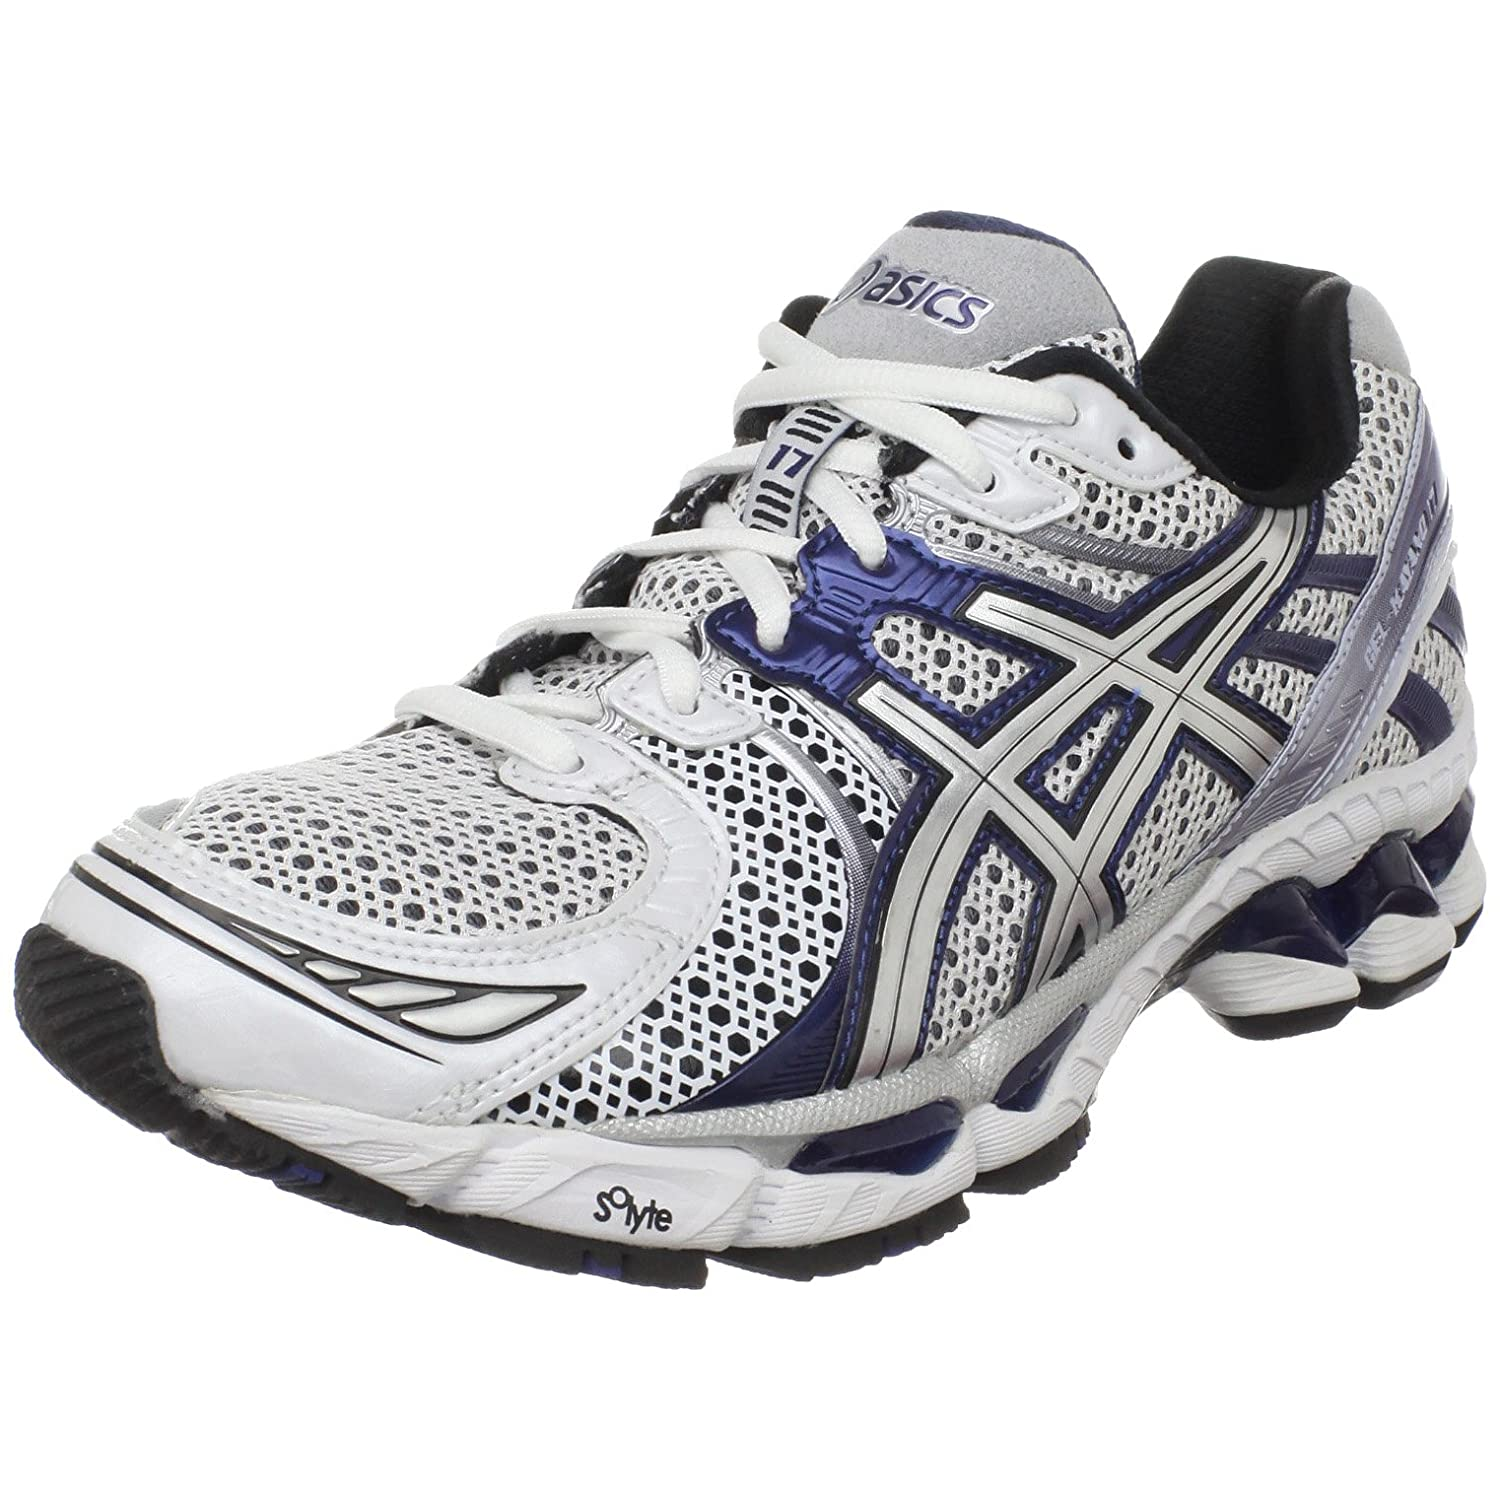 asics kayano men 17